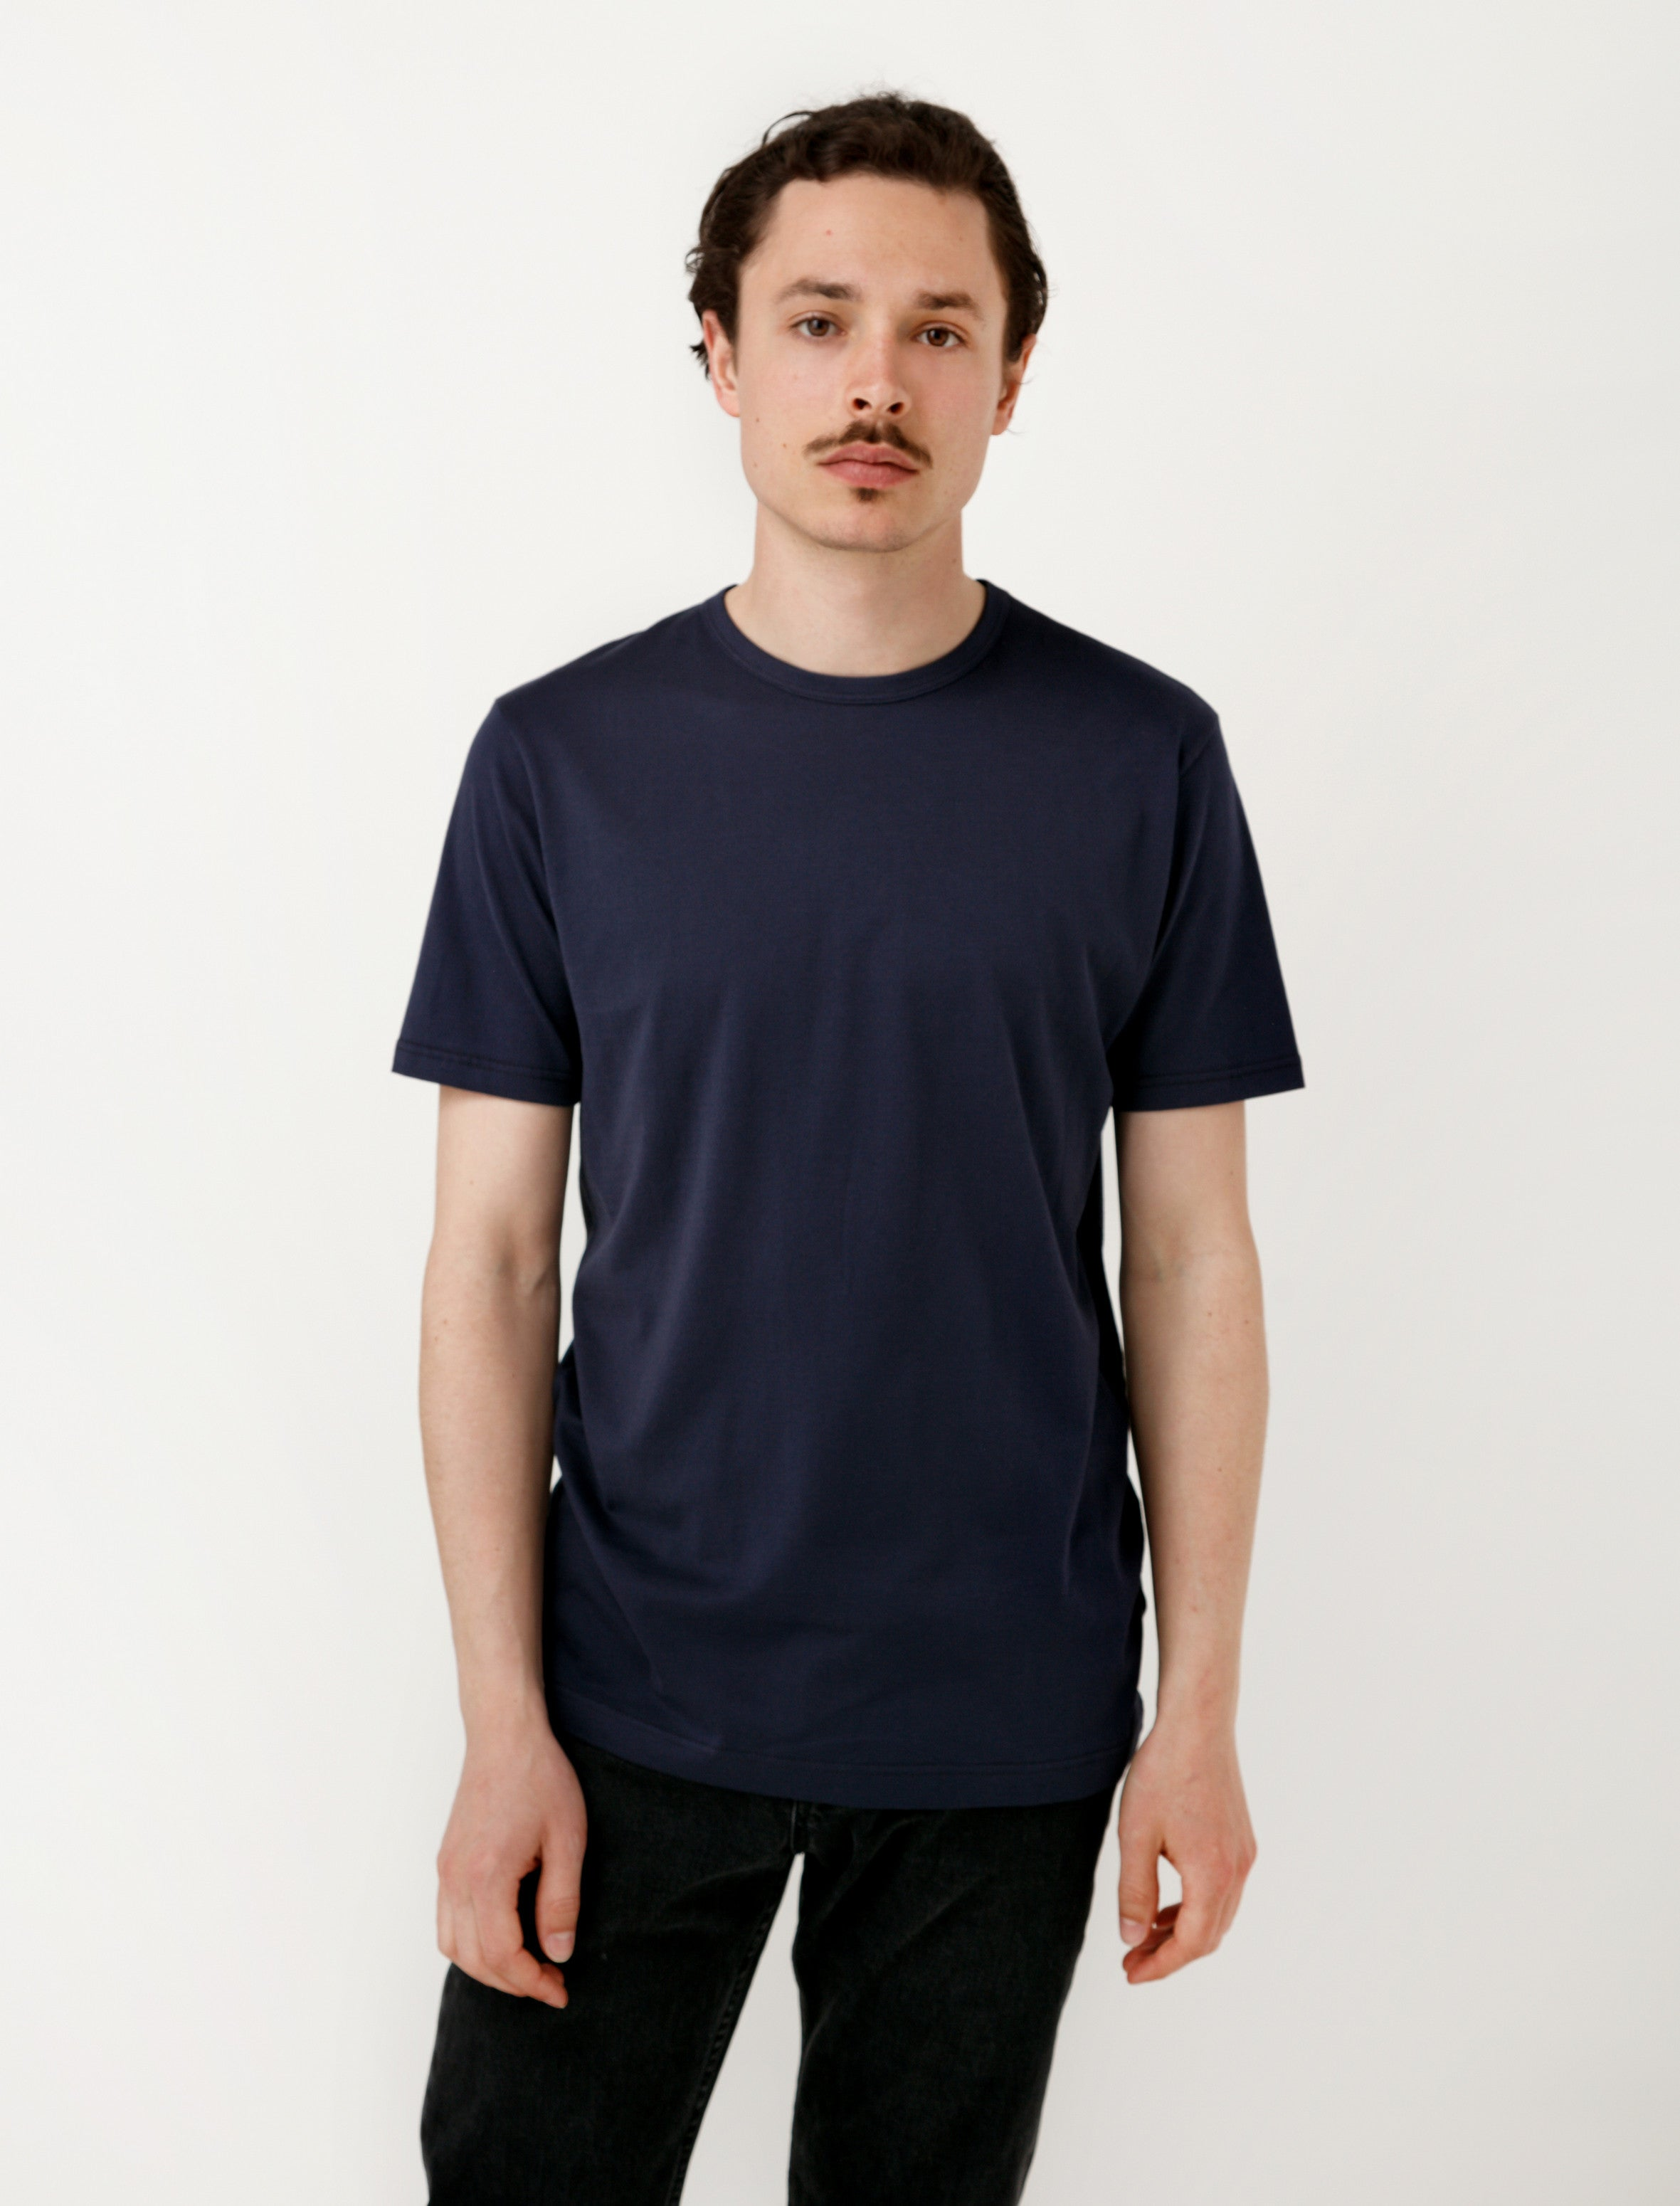 Short Sleeve T-Shirt Navy